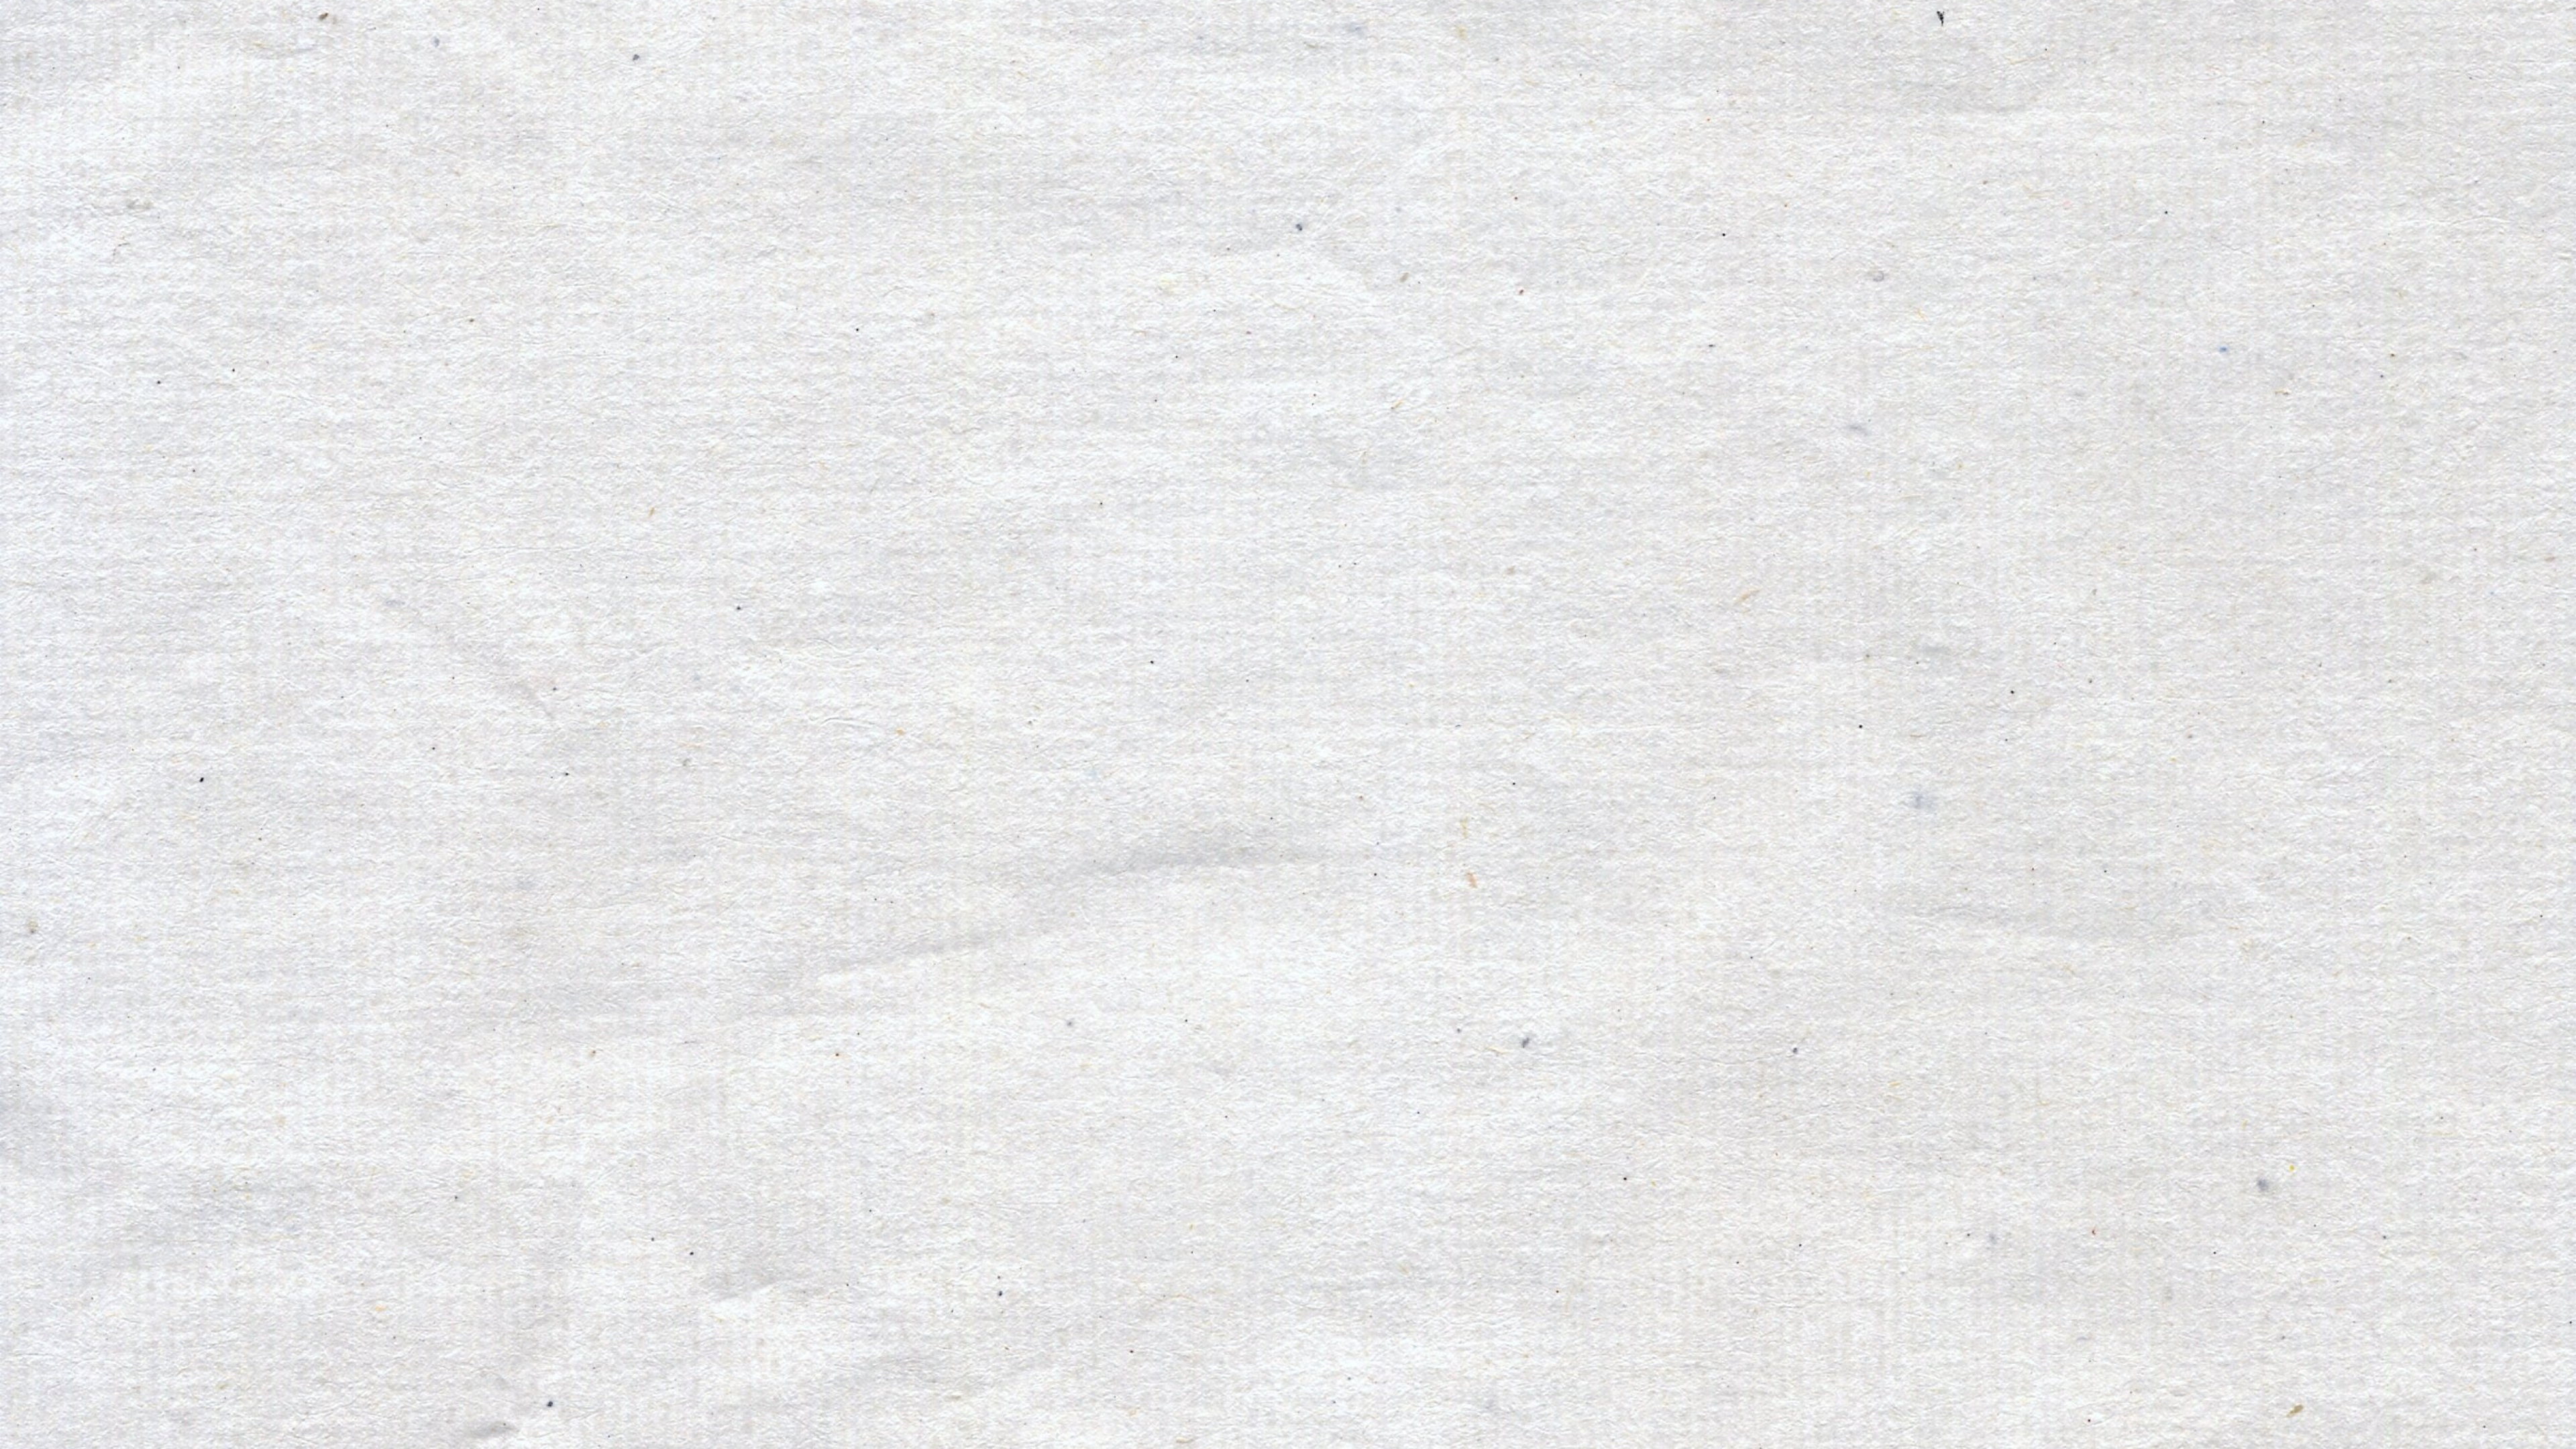 White Background   HD Wallpapers Backgrounds of Your Choice 3840x2160